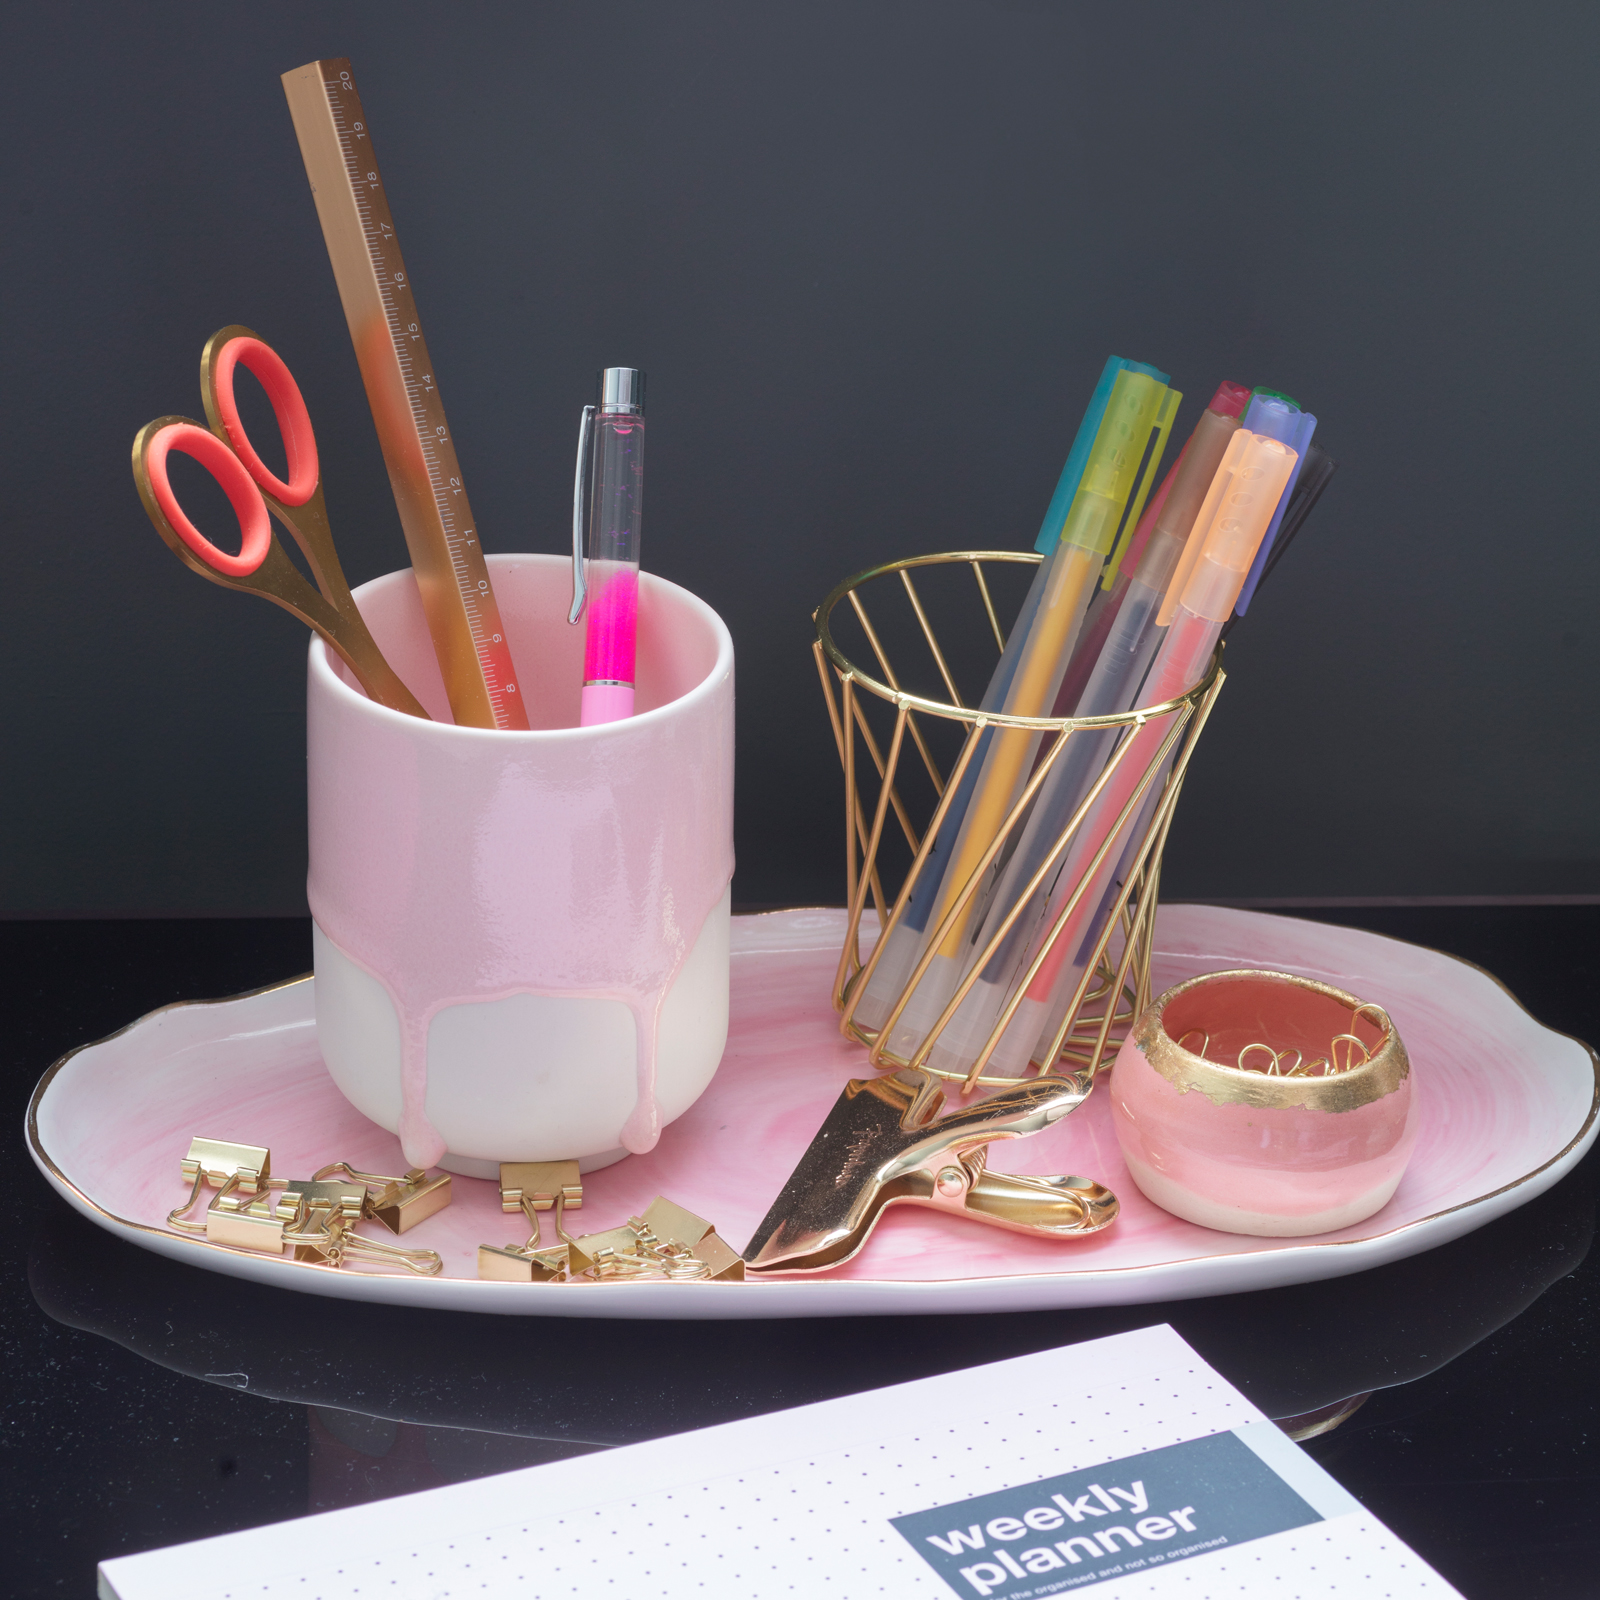 Pink tray with gold Paperchase stationery